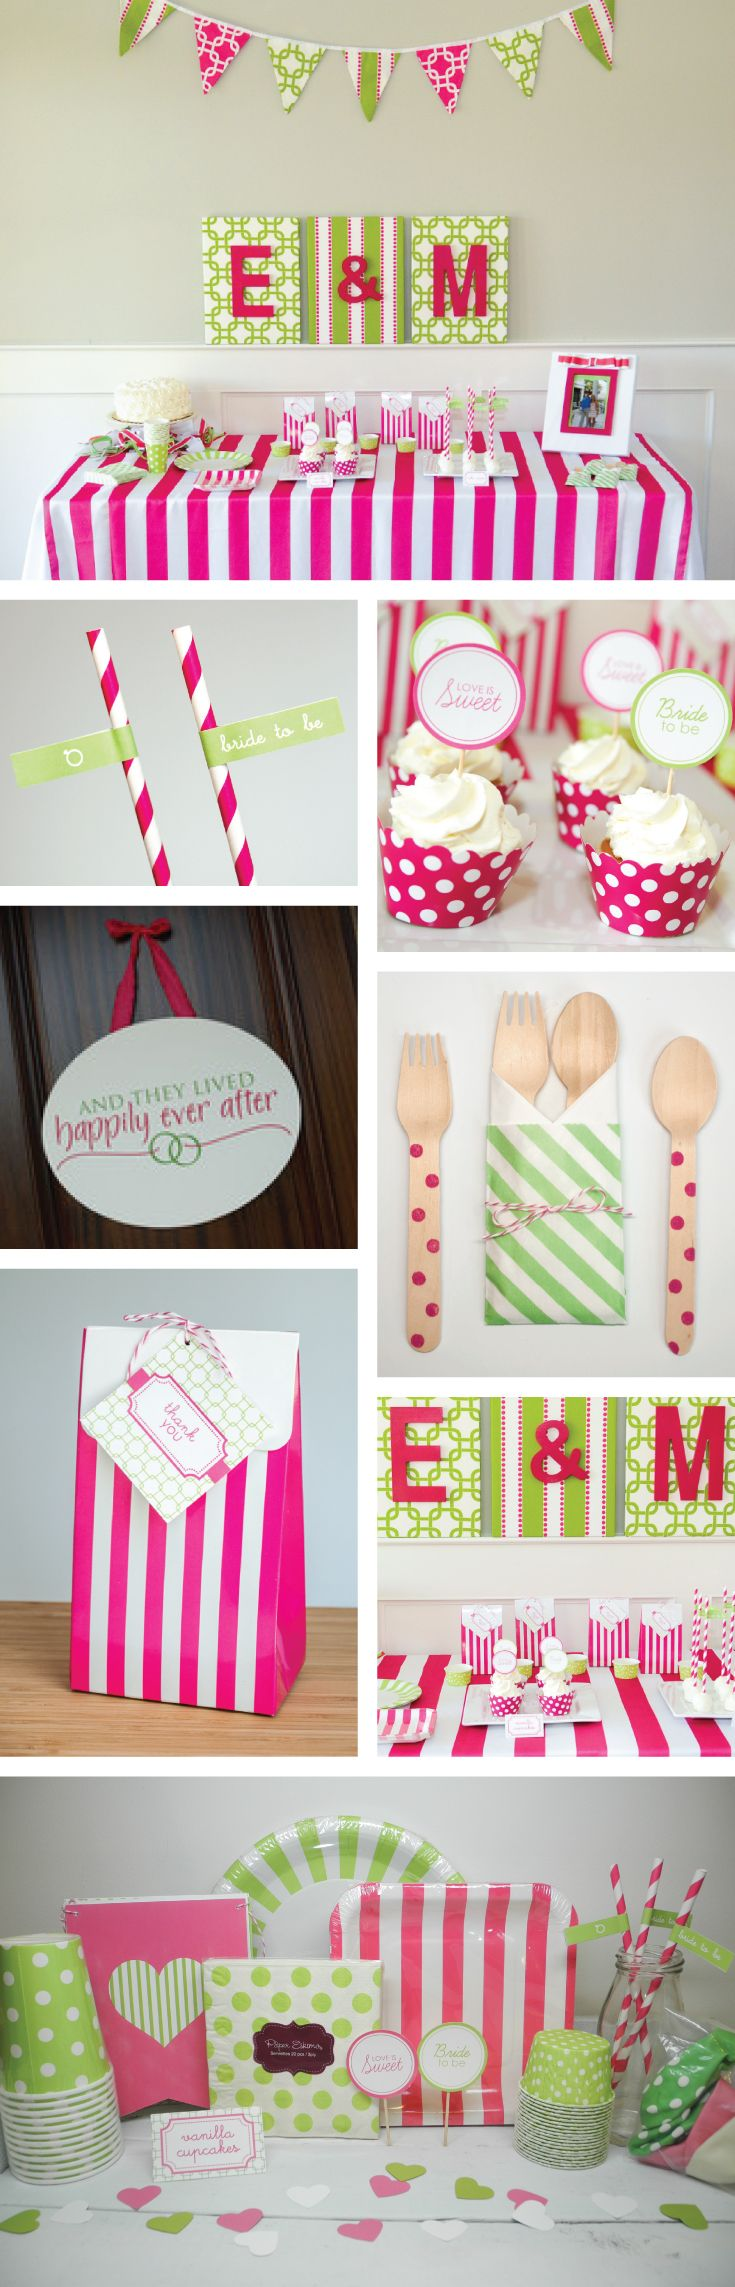 Pink and green preppy themed bridal shower and decorations | Pink and green tableware, linens, and decor in a party kit